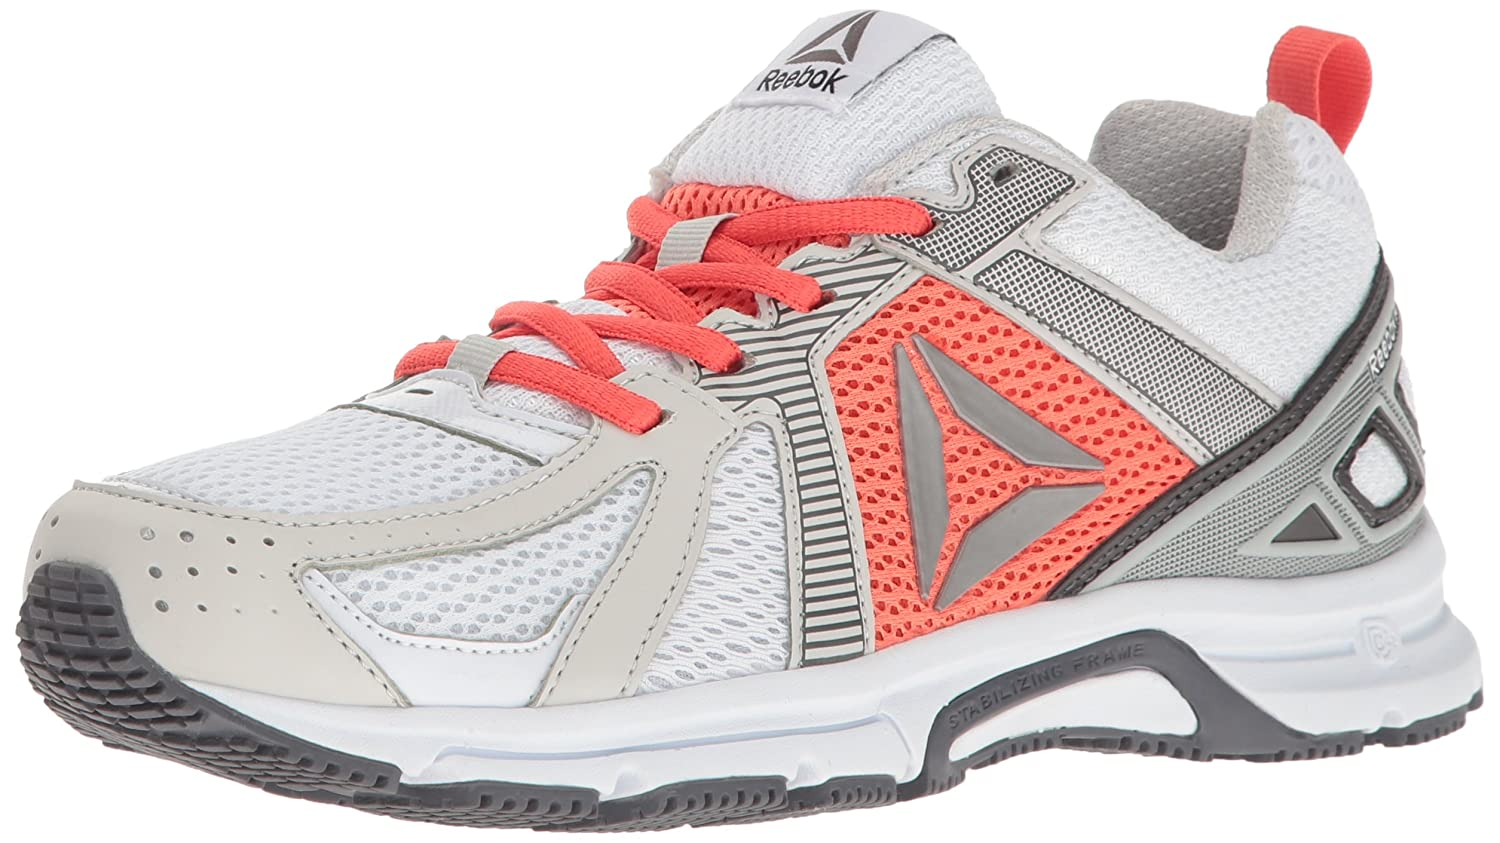 Reebok Women's Runner MT Running Shoes BD2880